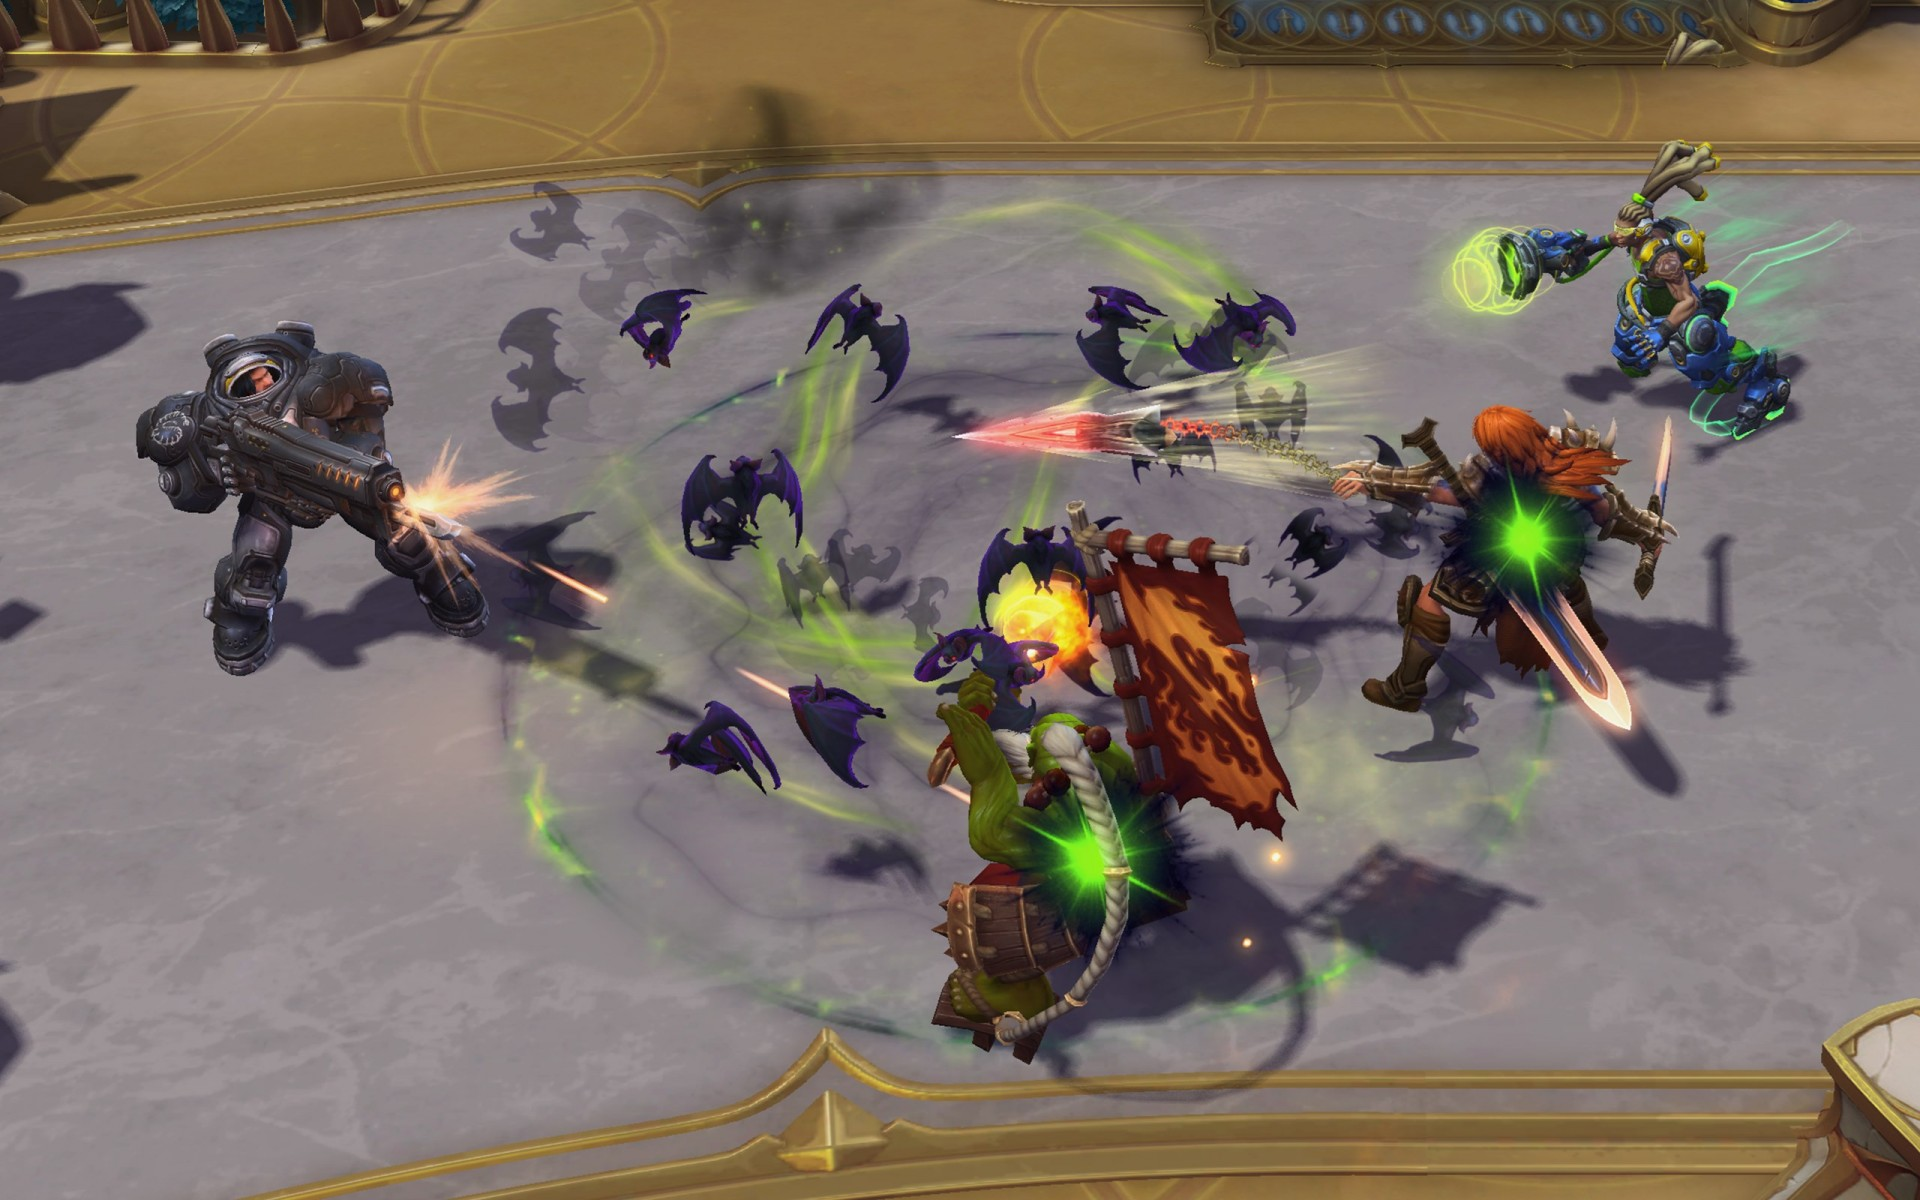 Heroes Of The Storm Mal Ganis Full Talents And Abilities Revealed Inven Global Knoll king on the loose hots: mal ganis full talents and abilities